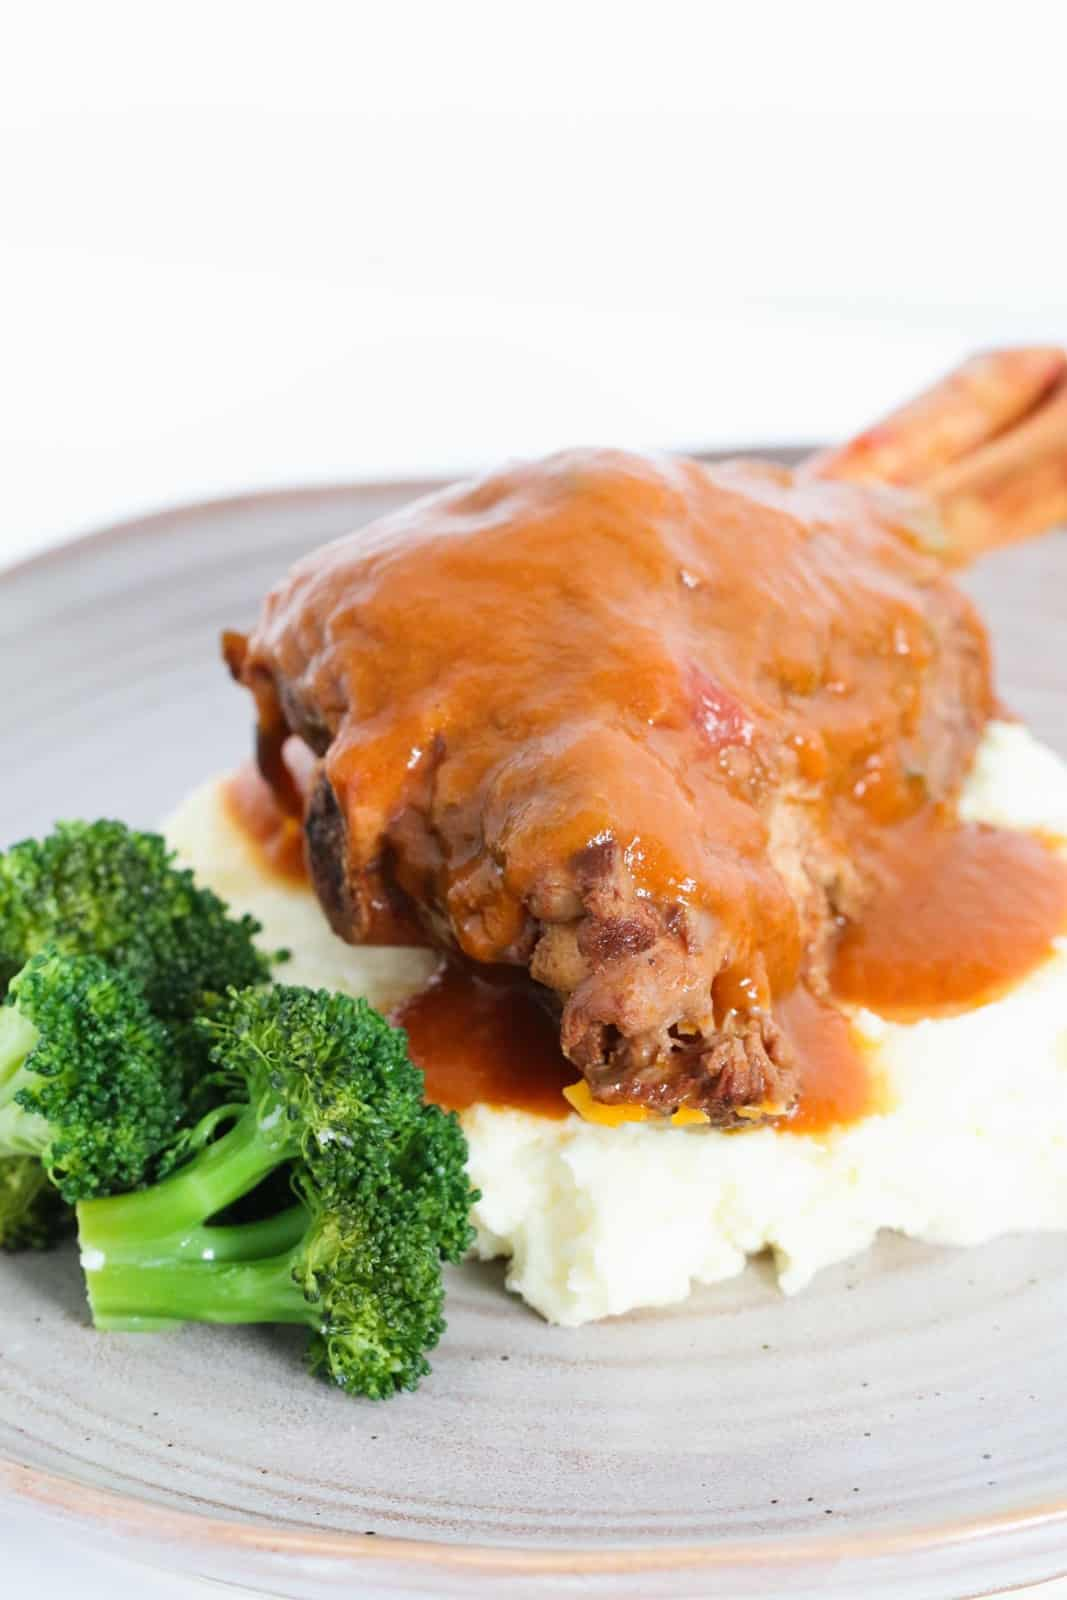 A lamb shank covered in a rich tomato gravy arranged on a bed of mashed potato with broccoli florets.